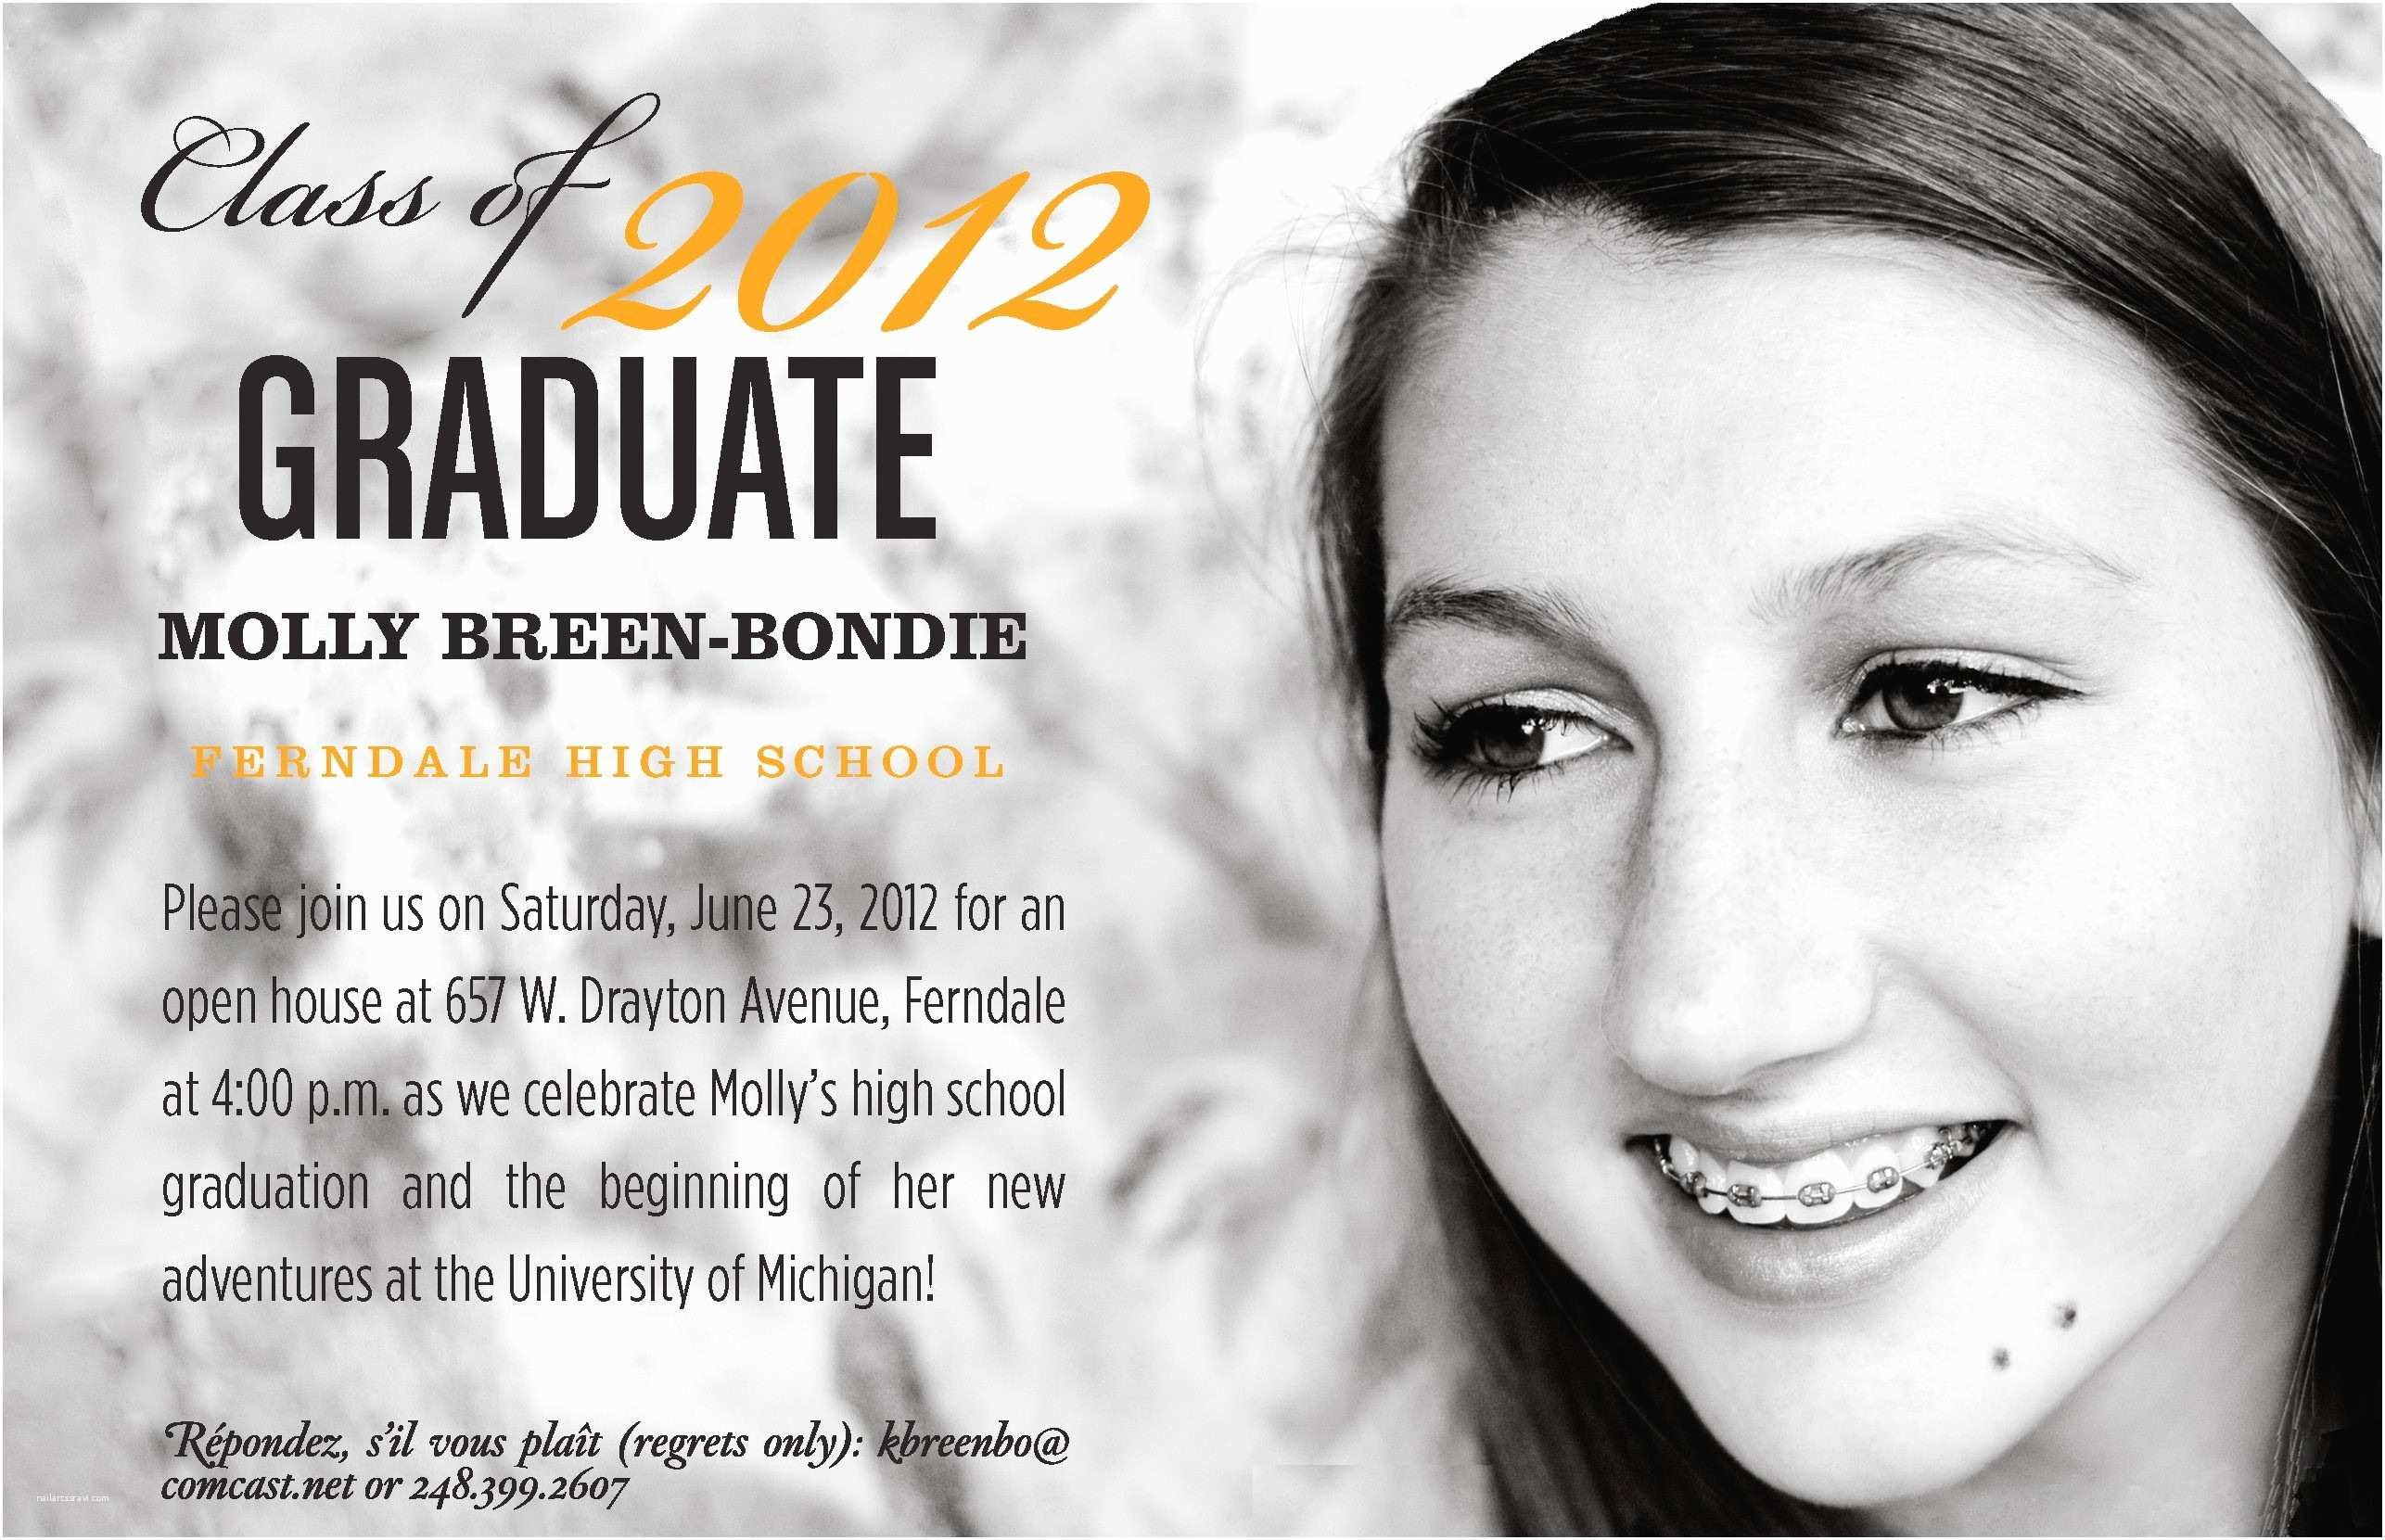 High School Graduation Invitations High School Graduation Invitation Wording High School